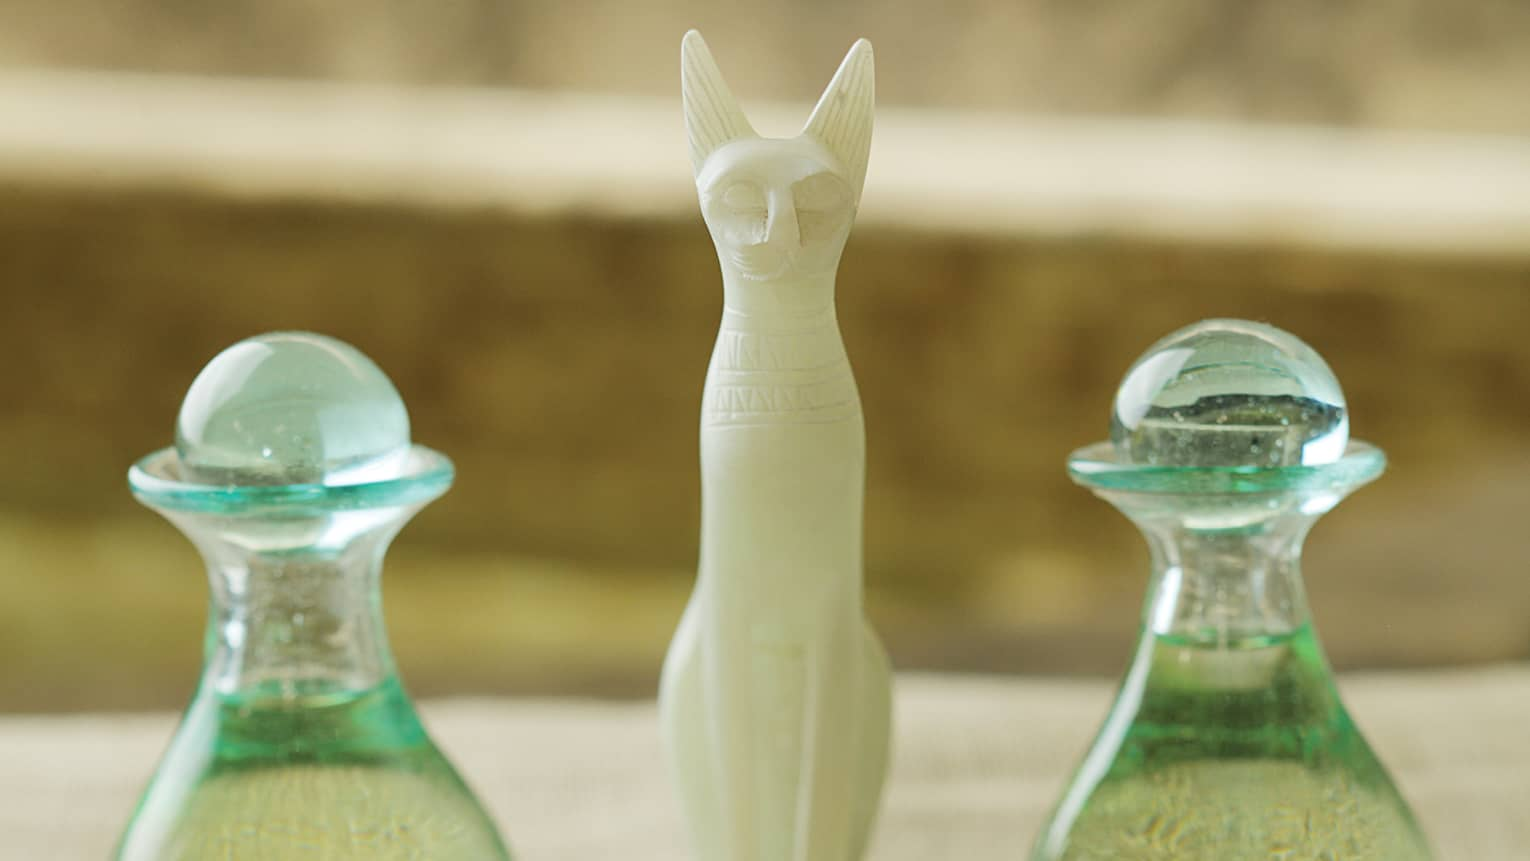 White cat sculpture between two green glass bottles